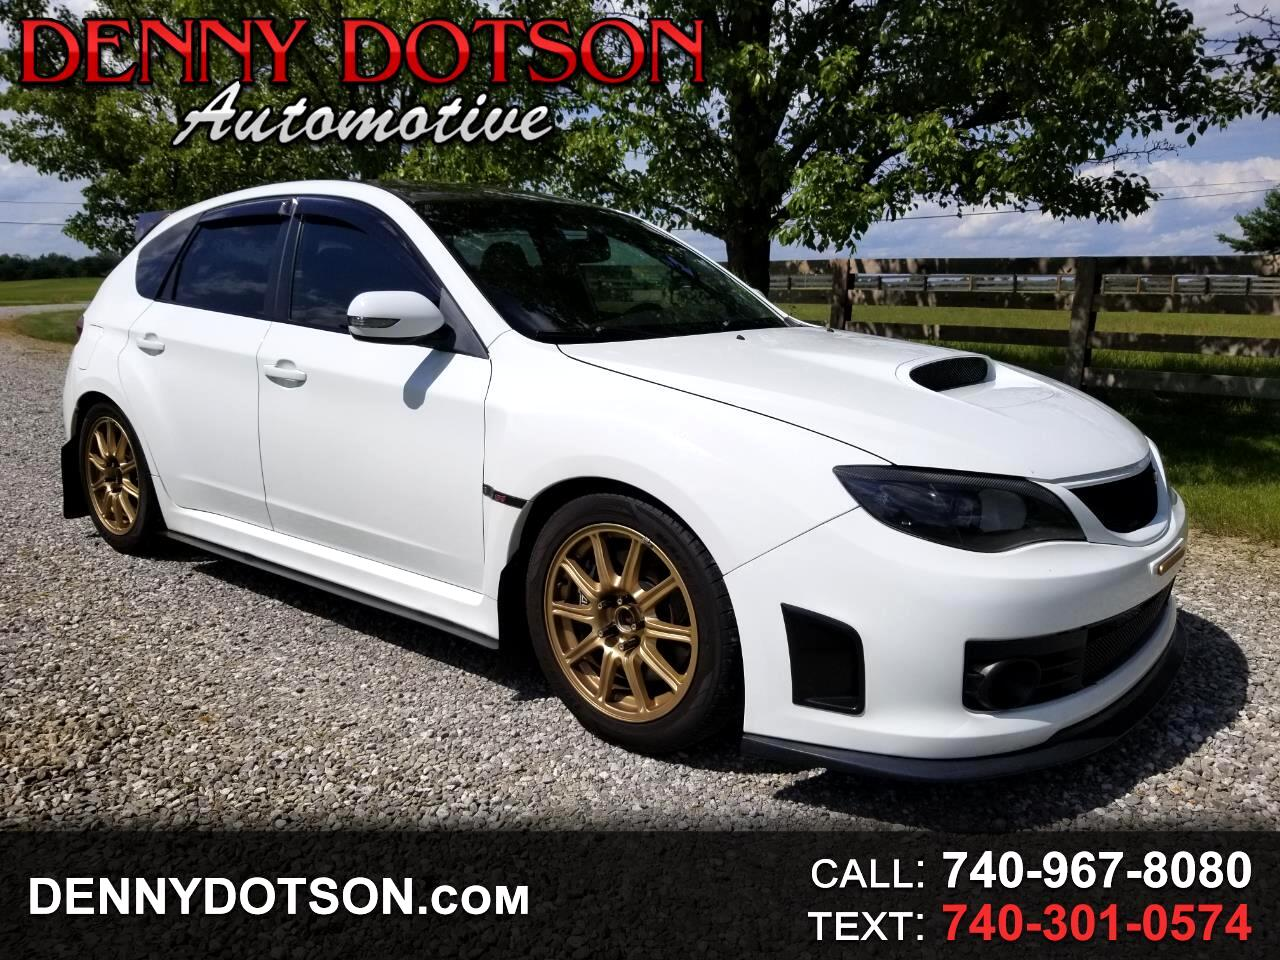 2008 Subaru Impreza Wagon (Natl) 5dr Man STI w/Gold Wheels/Nav